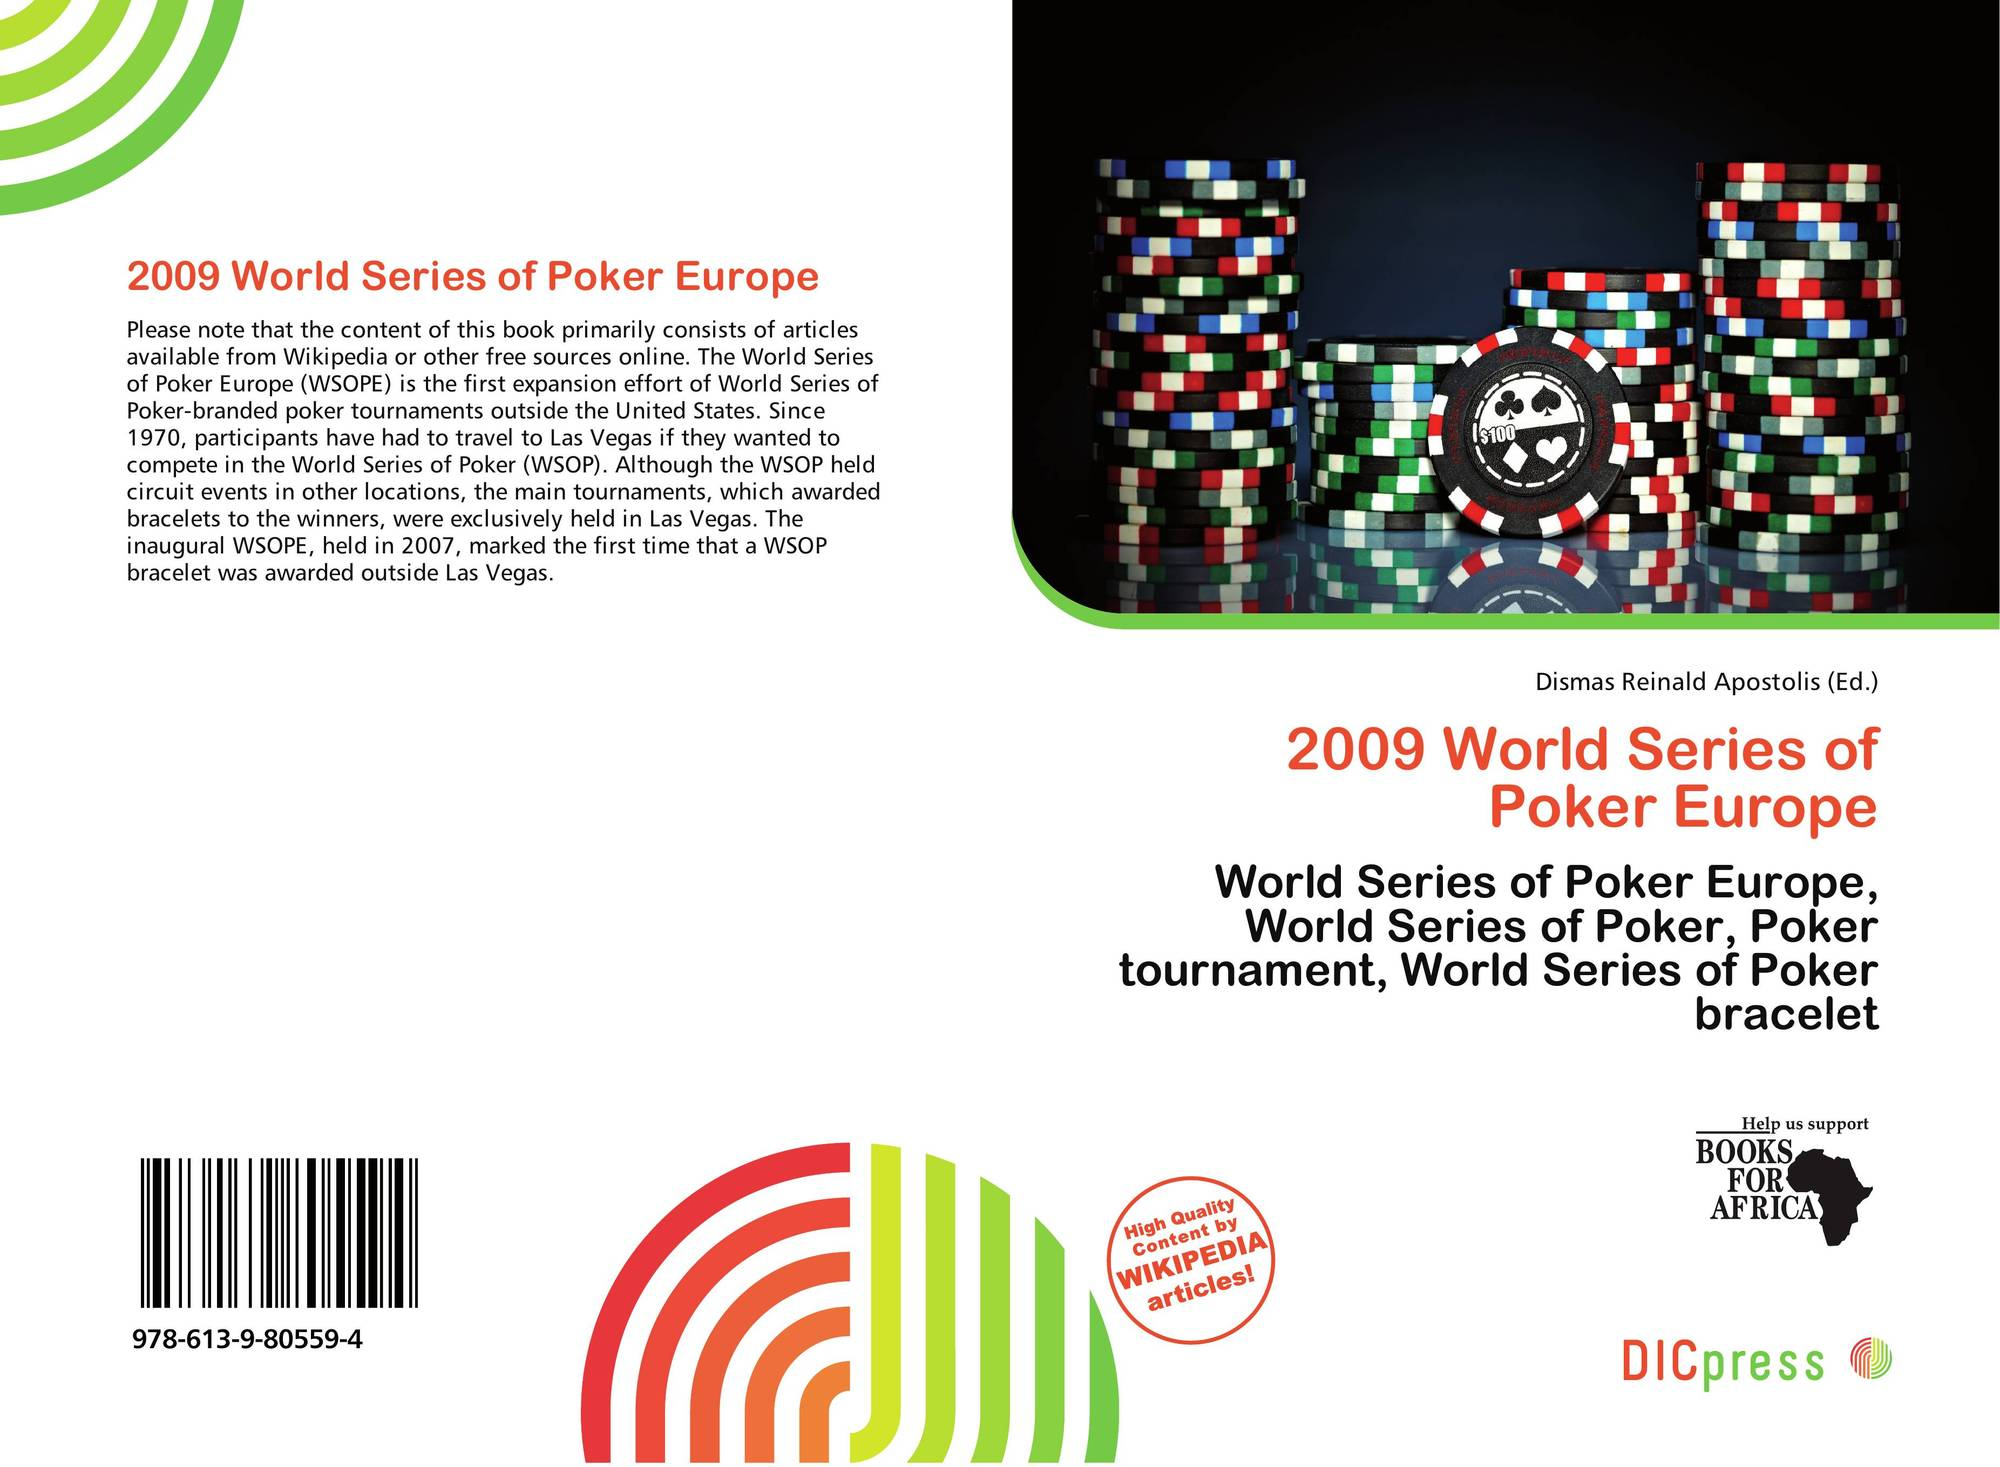 e73fbac55 Bookcover of 2009 World Series of Poker Europe. 9786139805594